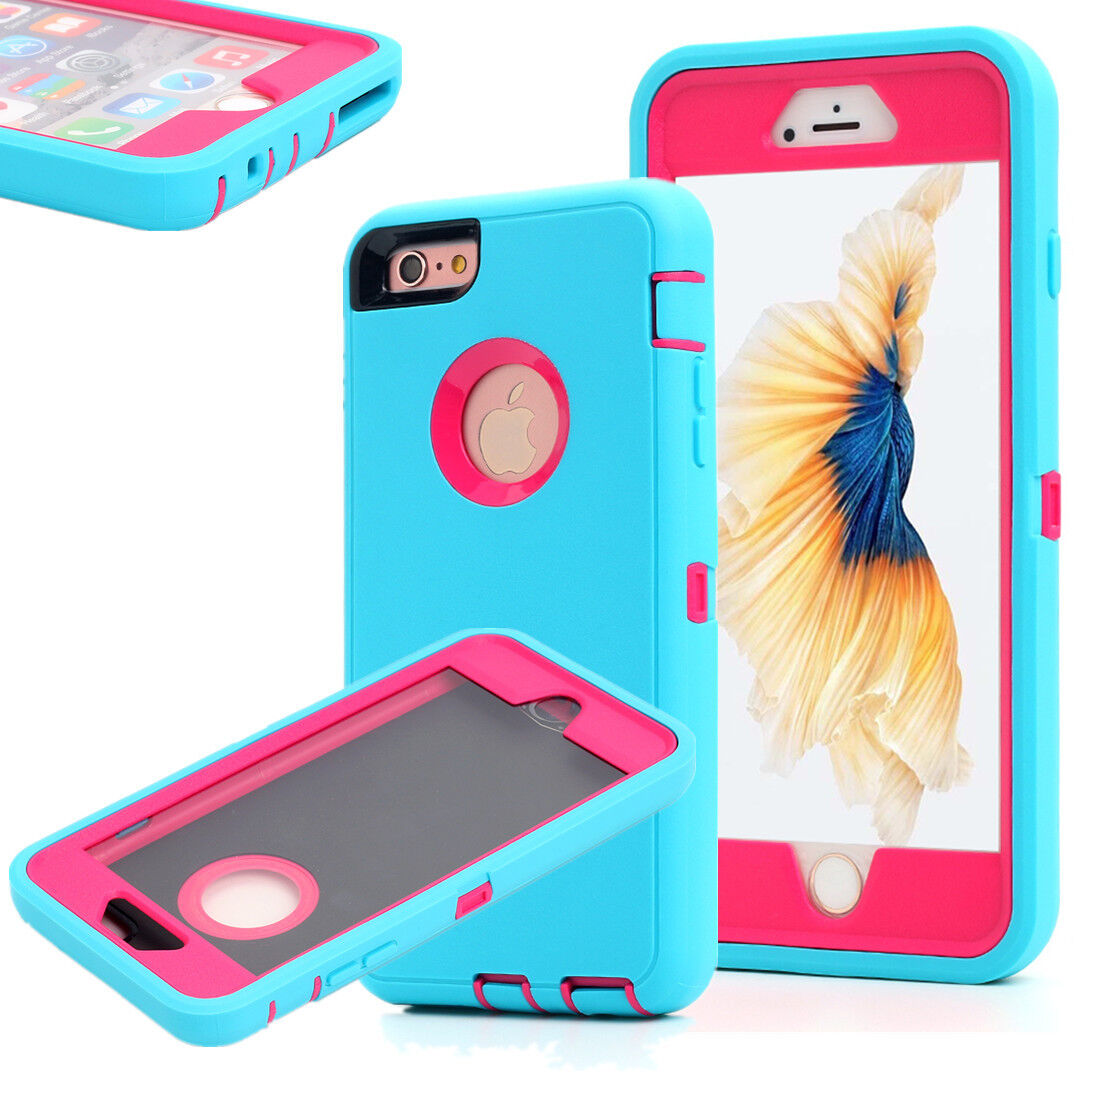 Protective Hybrid Shockproof Hard Armor Case Cover Fr Apple iPhone 6 6S 7 8 Plus